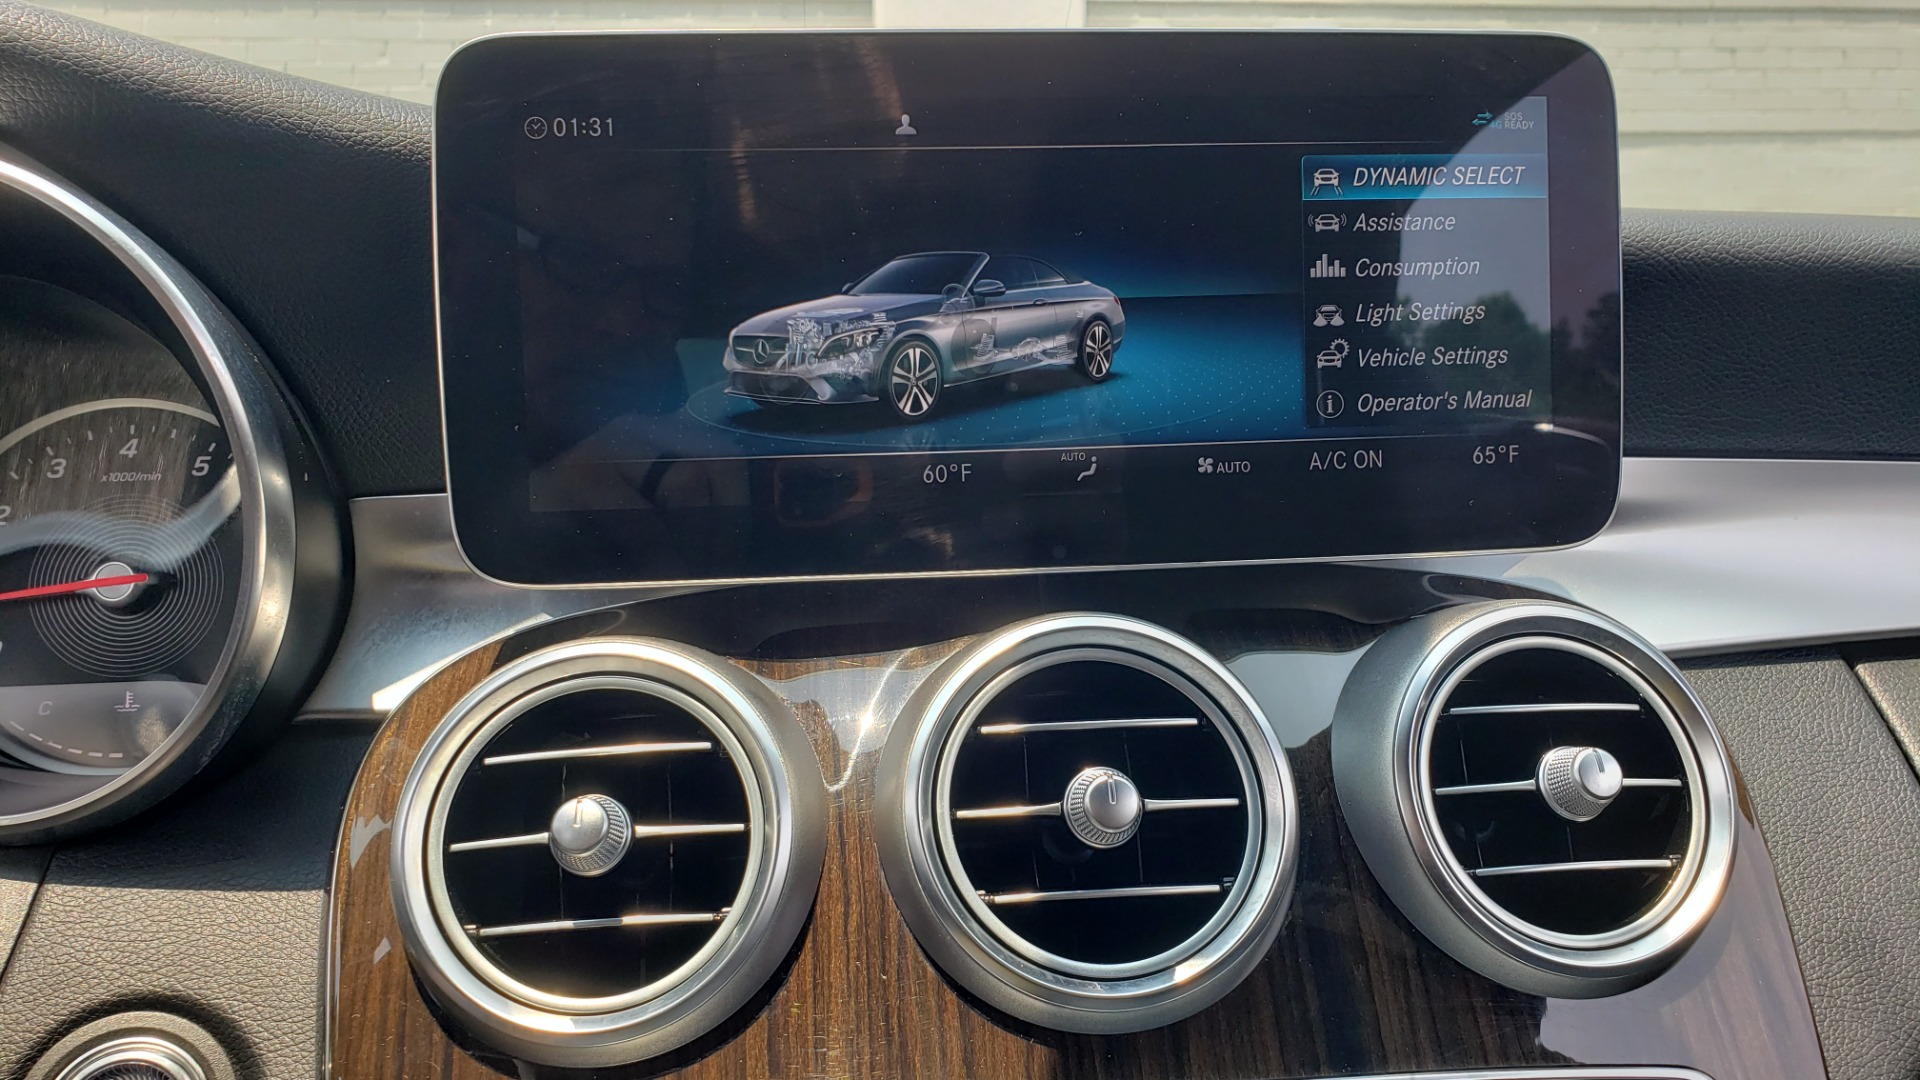 Used 2019 Mercedes-Benz C-CLASS C 300 CABRIOLET 2.0L / AUTO / NAV / HD RADIO / REARVIEW for sale $46,995 at Formula Imports in Charlotte NC 28227 53